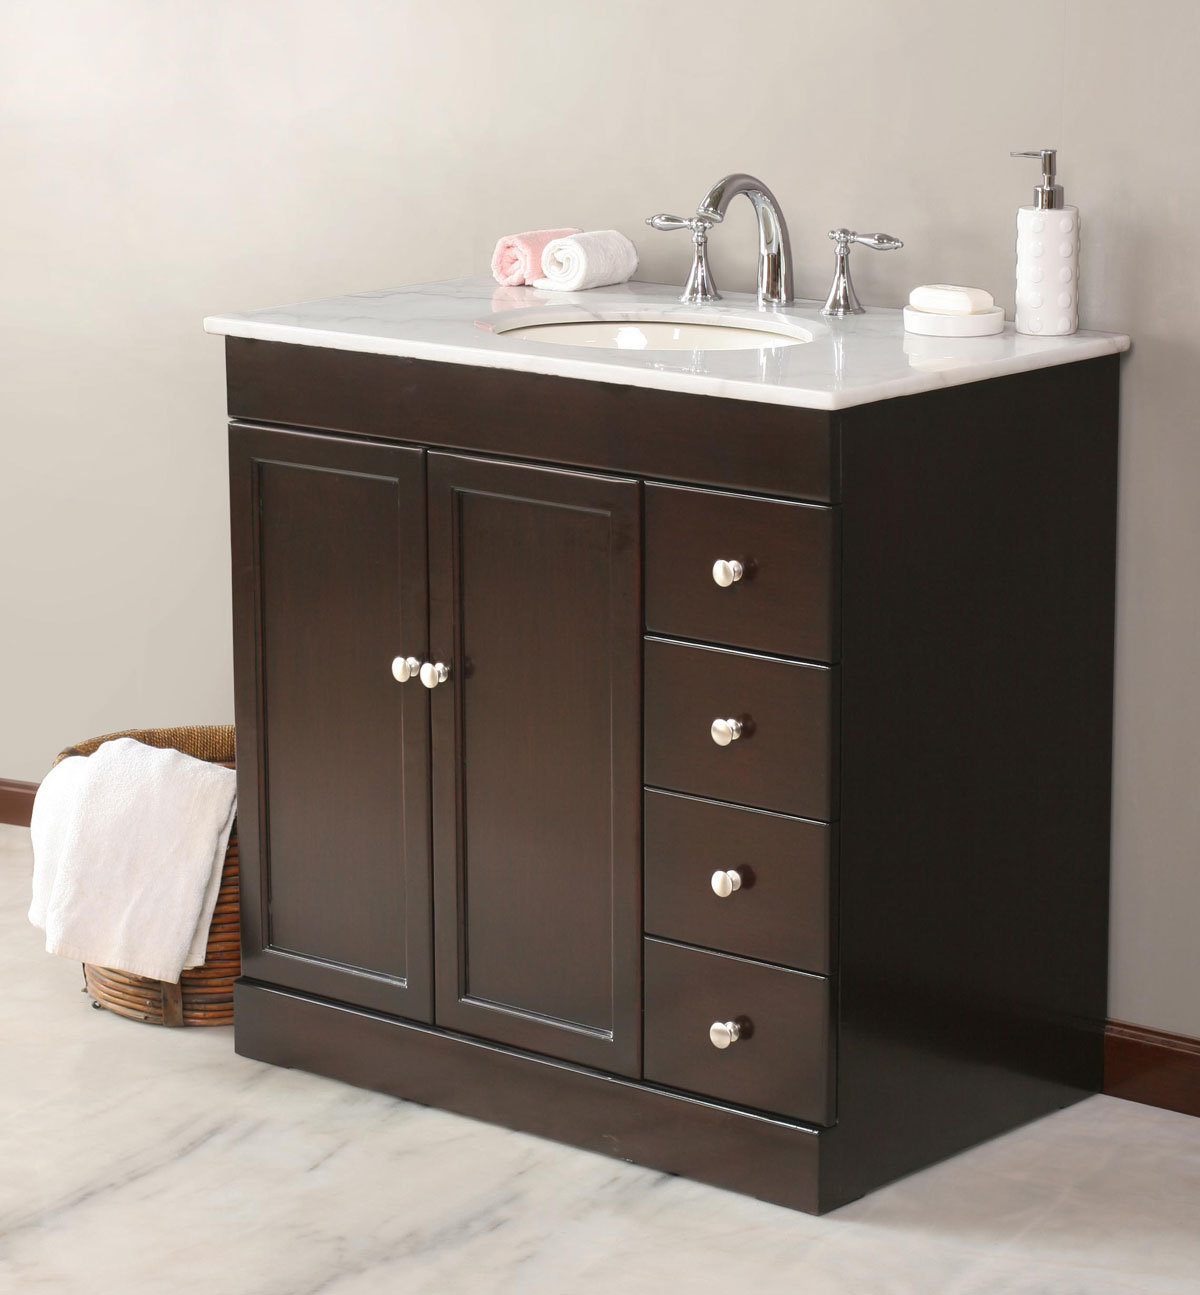 China granite top bathroom vanity furniture mj 3119 for Granite bathroom vanity